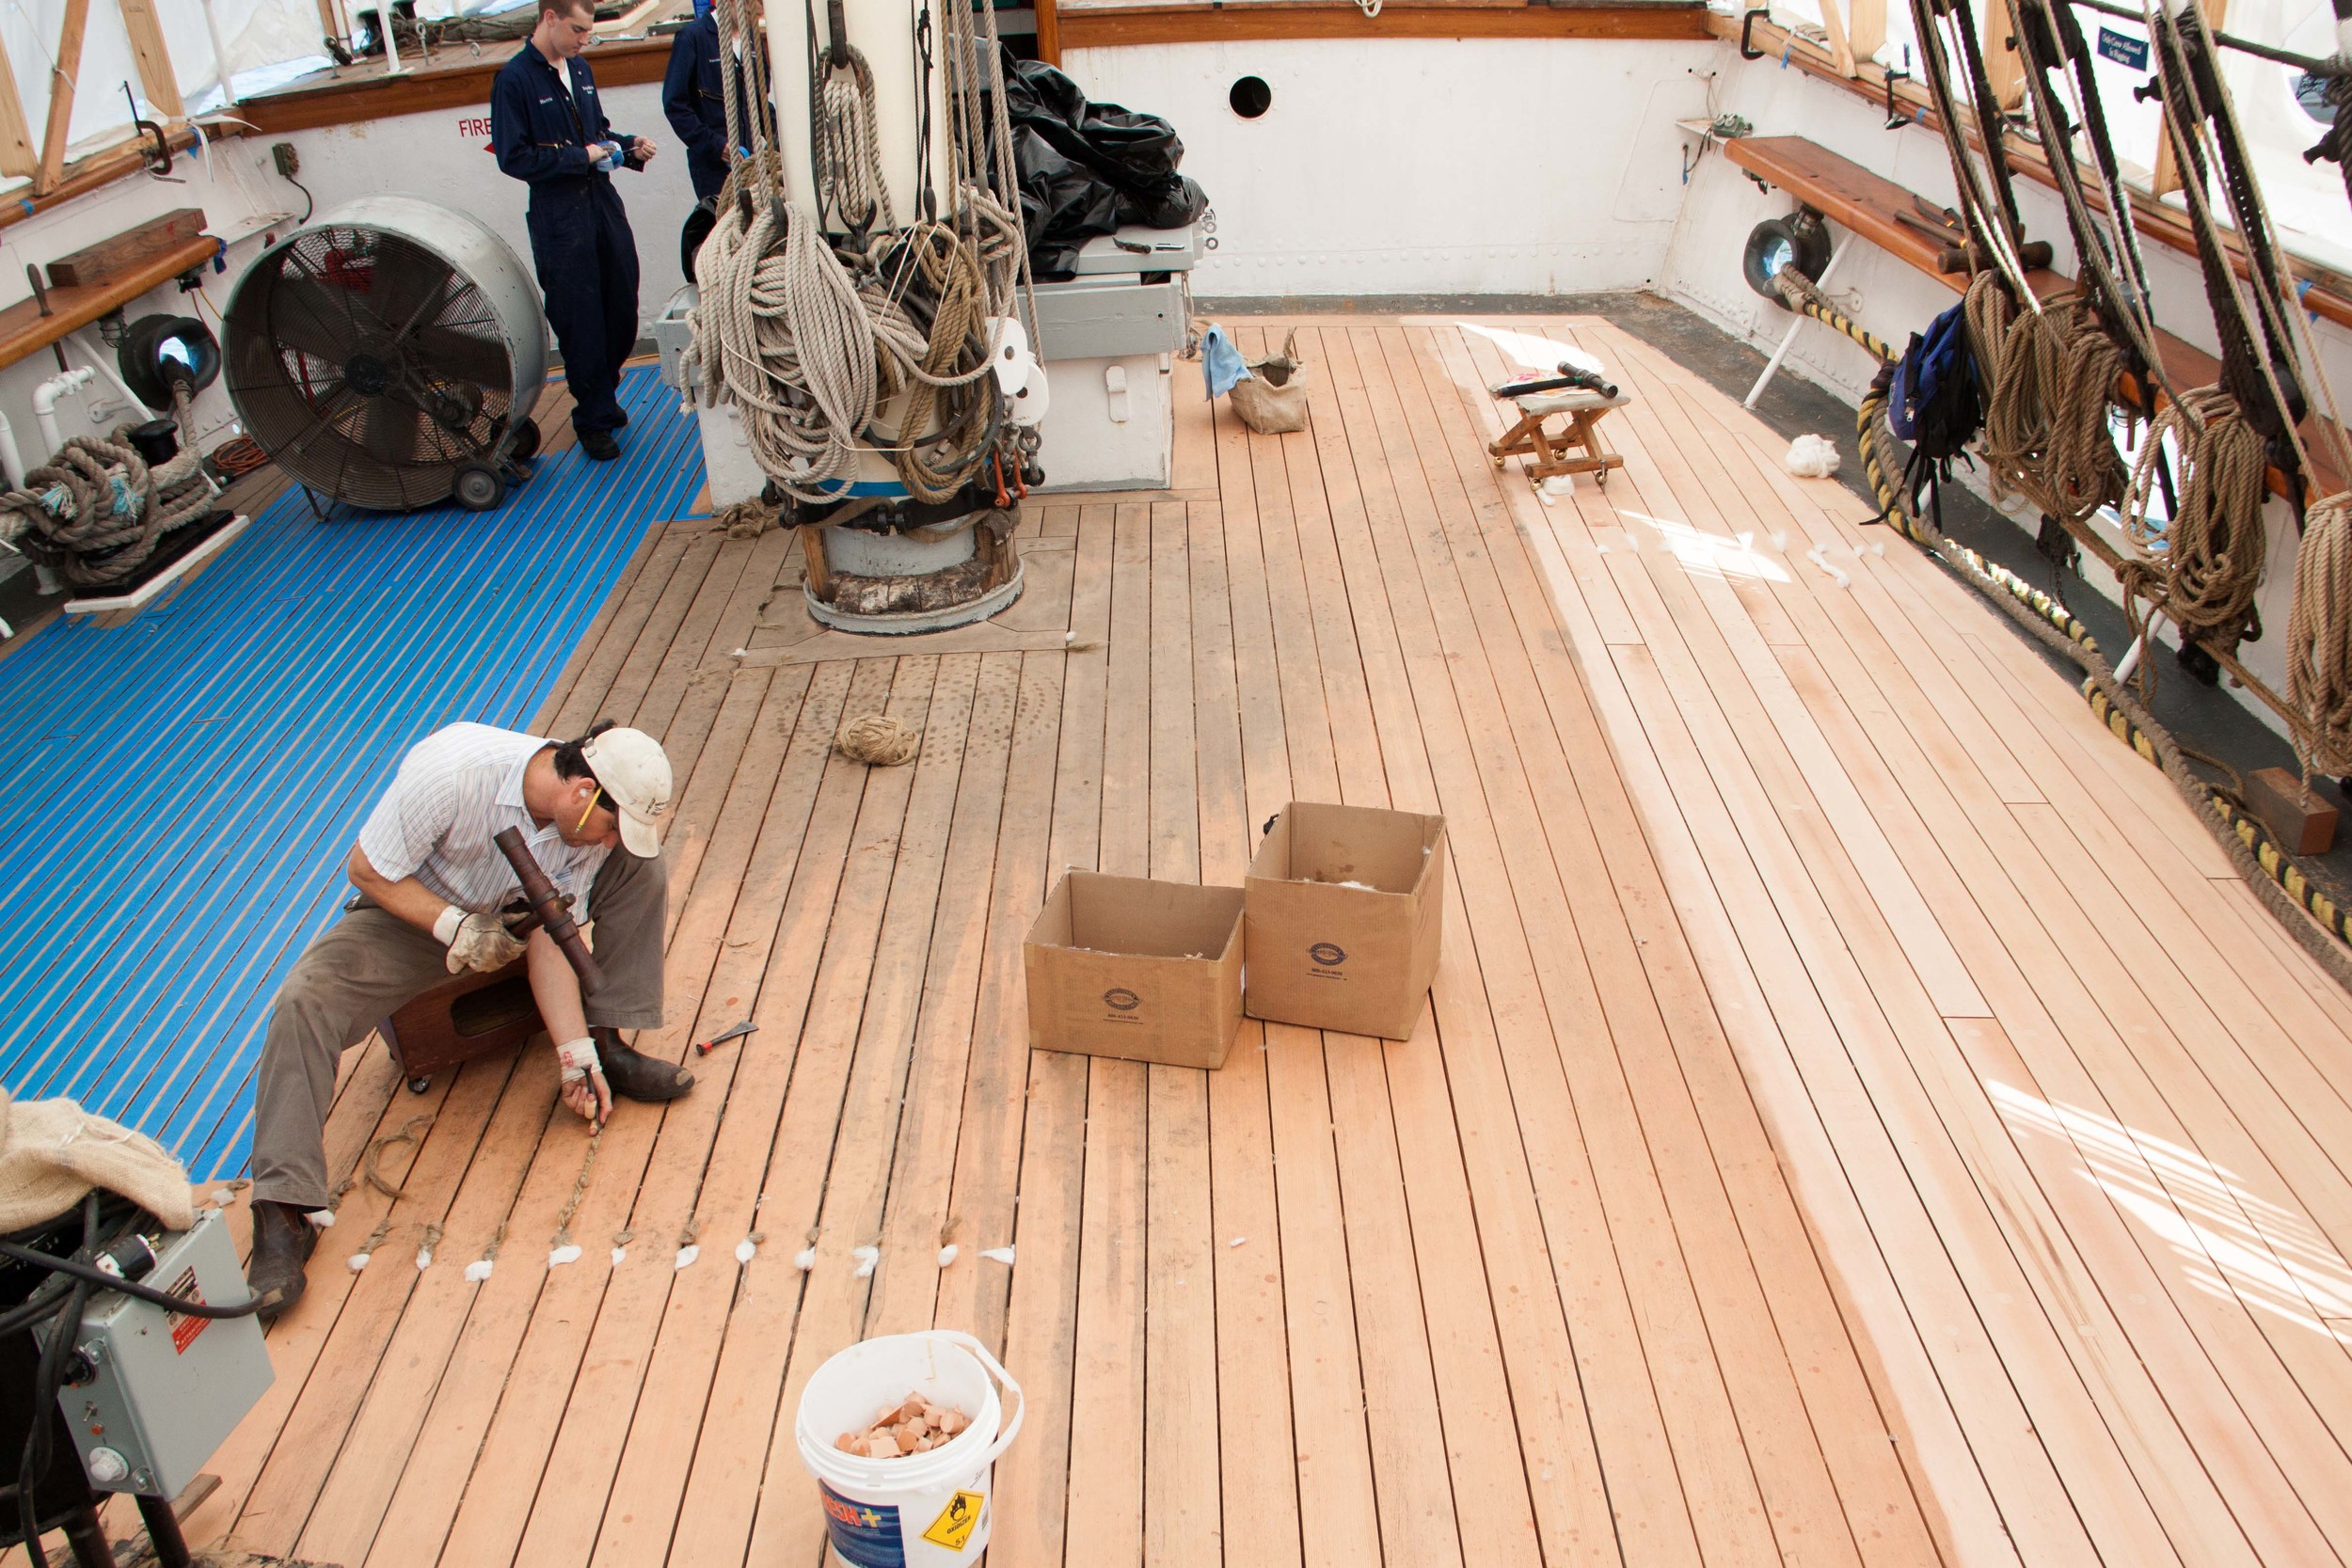 Andros caulking the deck